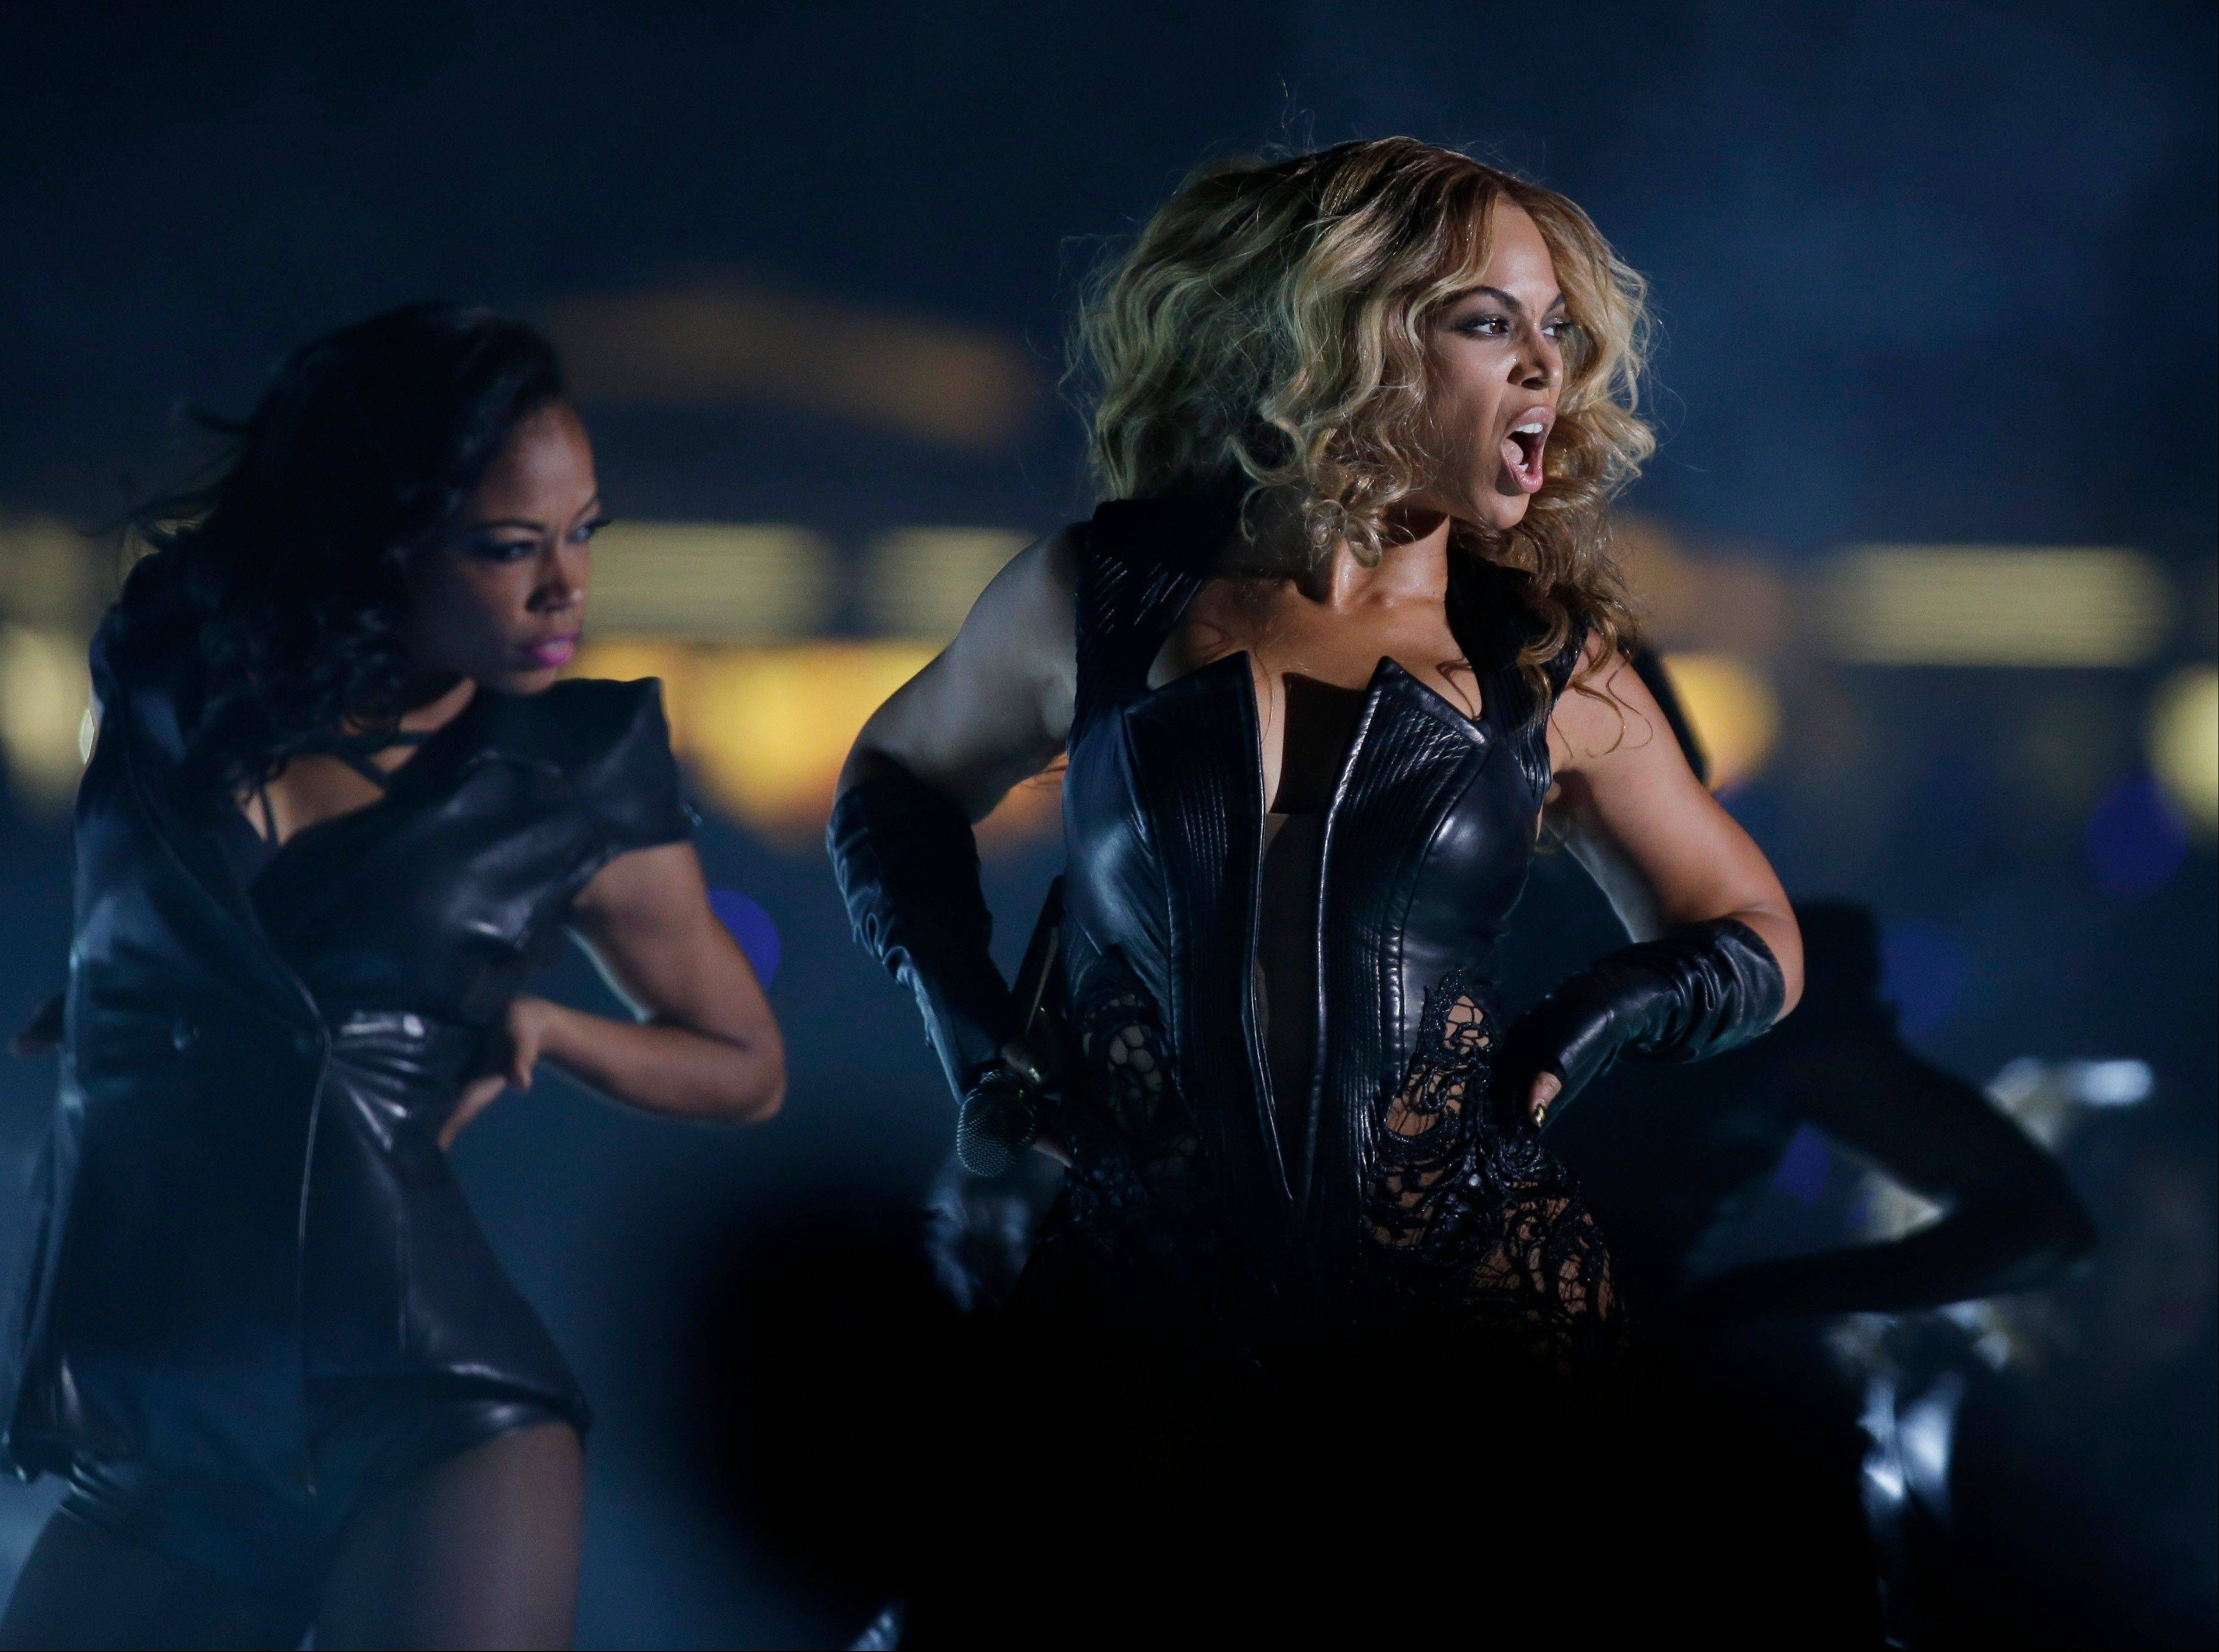 Beyoncé performs during the halftime show of Super Bowl XLVII between the San Francisco 49ers and the Baltimore Ravens on Sunday in New Orleans.